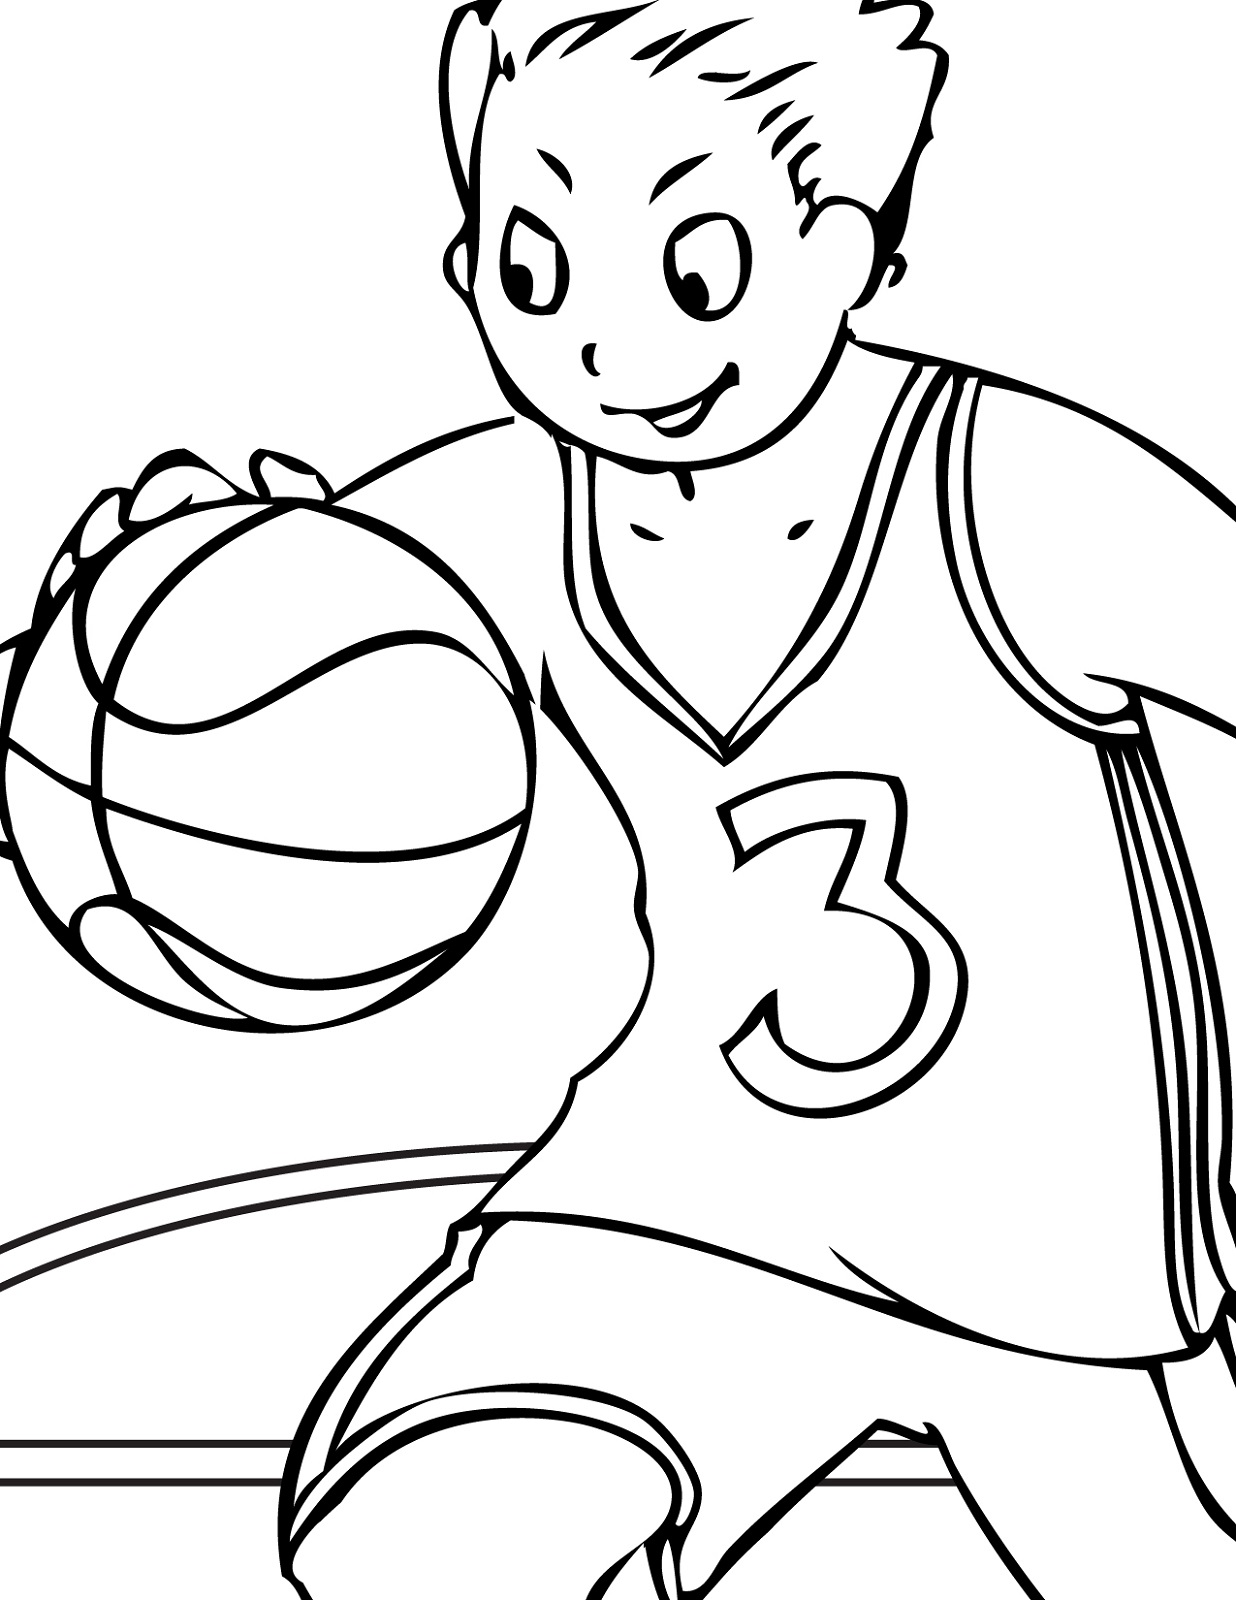 Coloring Images for Kids Sport